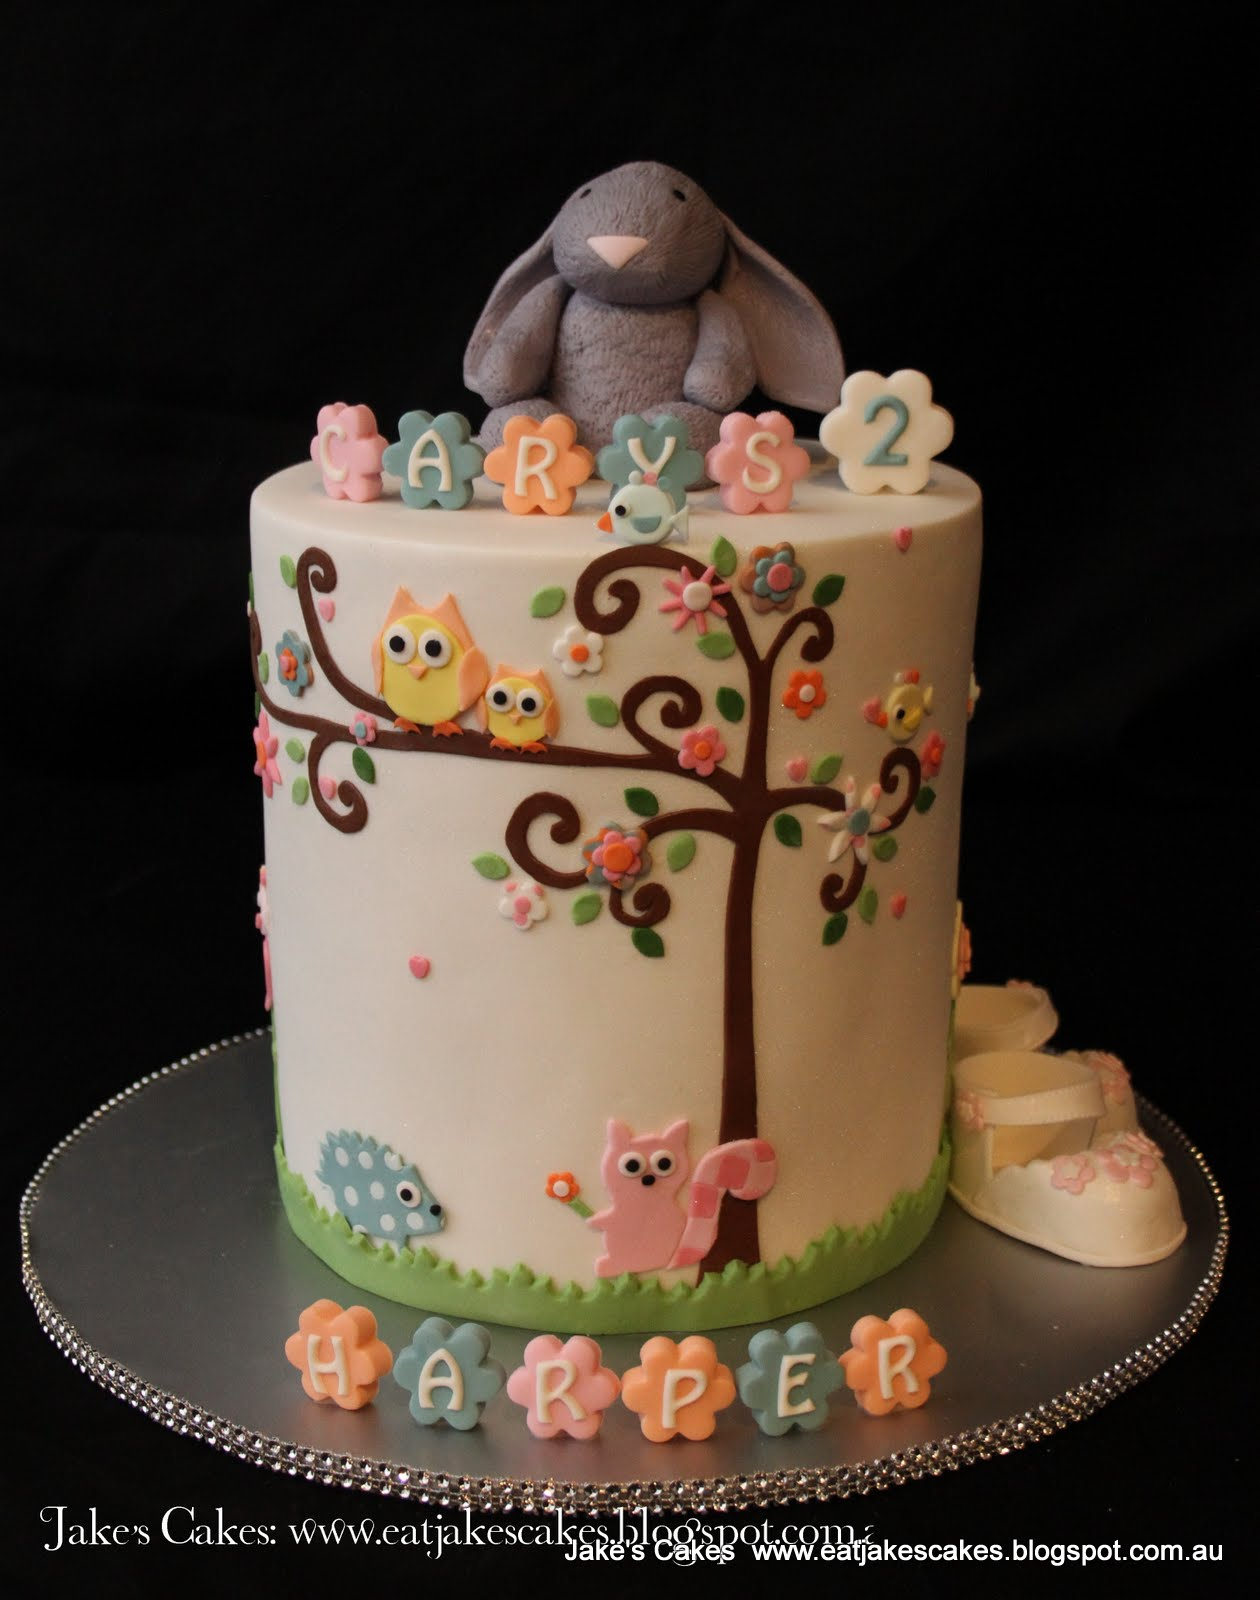 Happy Birthday To My Beautiful Daughter Carys I Cant Believe Shes 2 Where Has Those Years Gone This Cake Is Styled On Some Of The Things She Loves